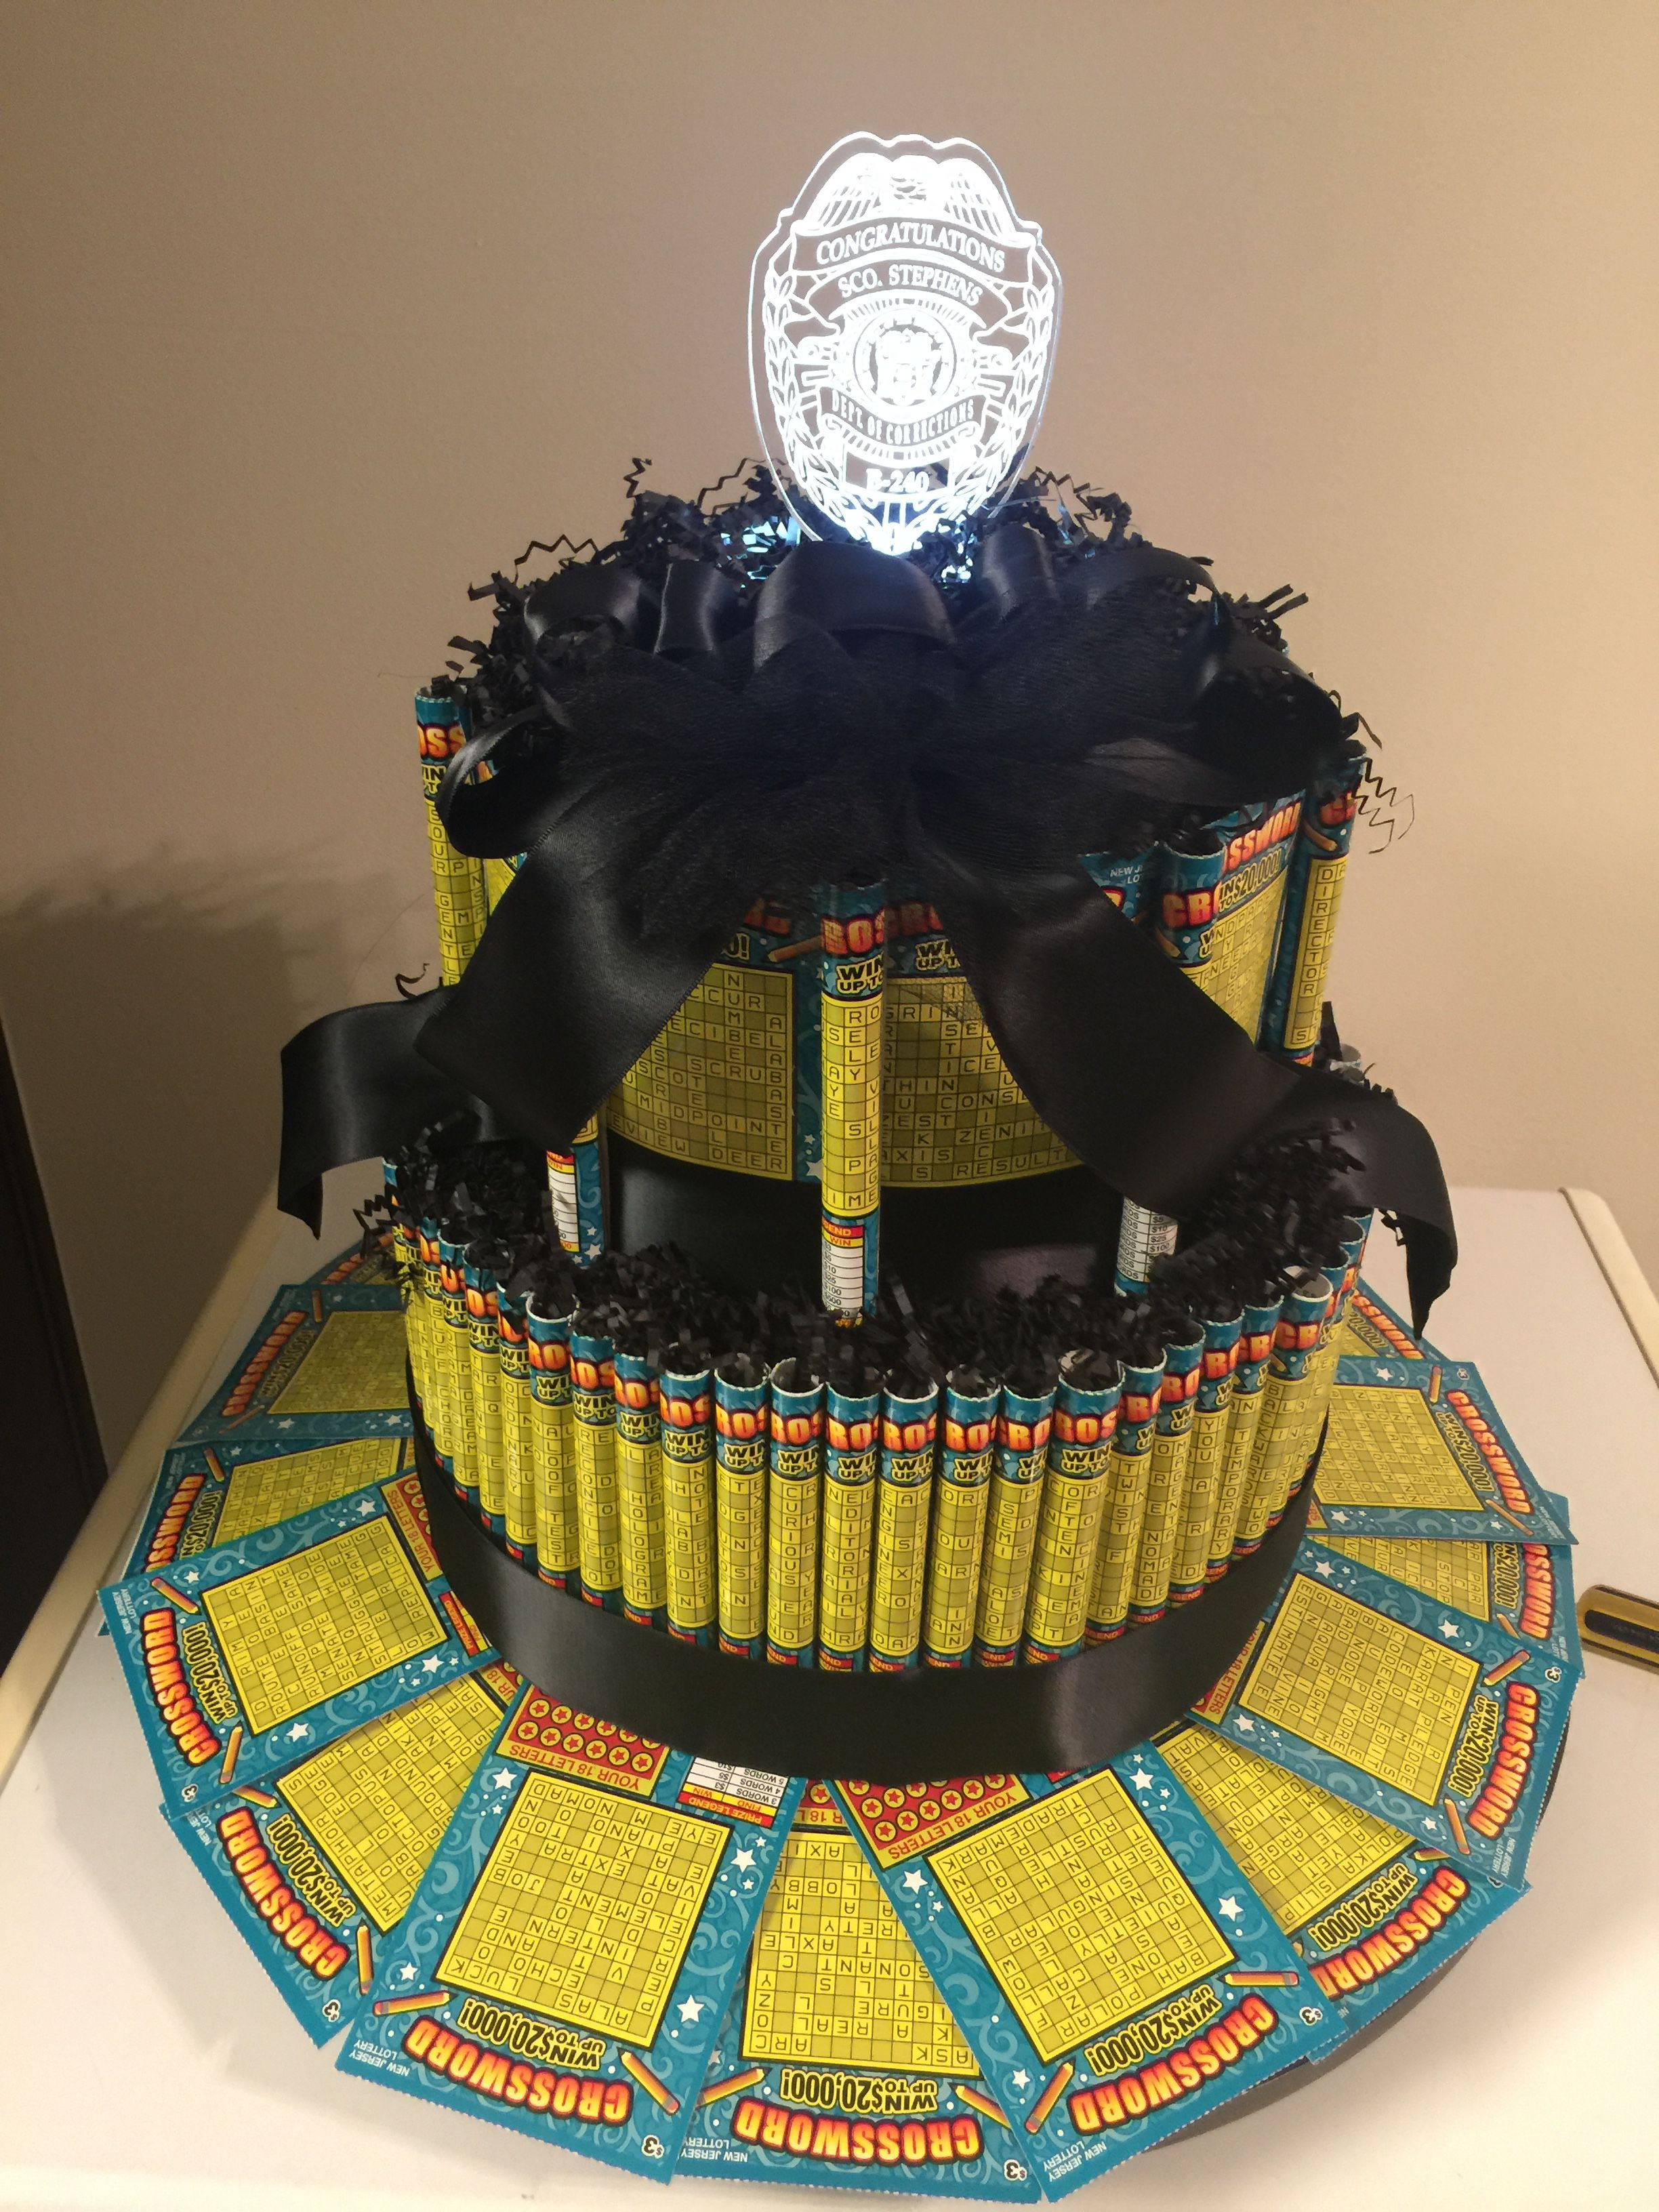 Scratch Off Lottery Tickets Cake